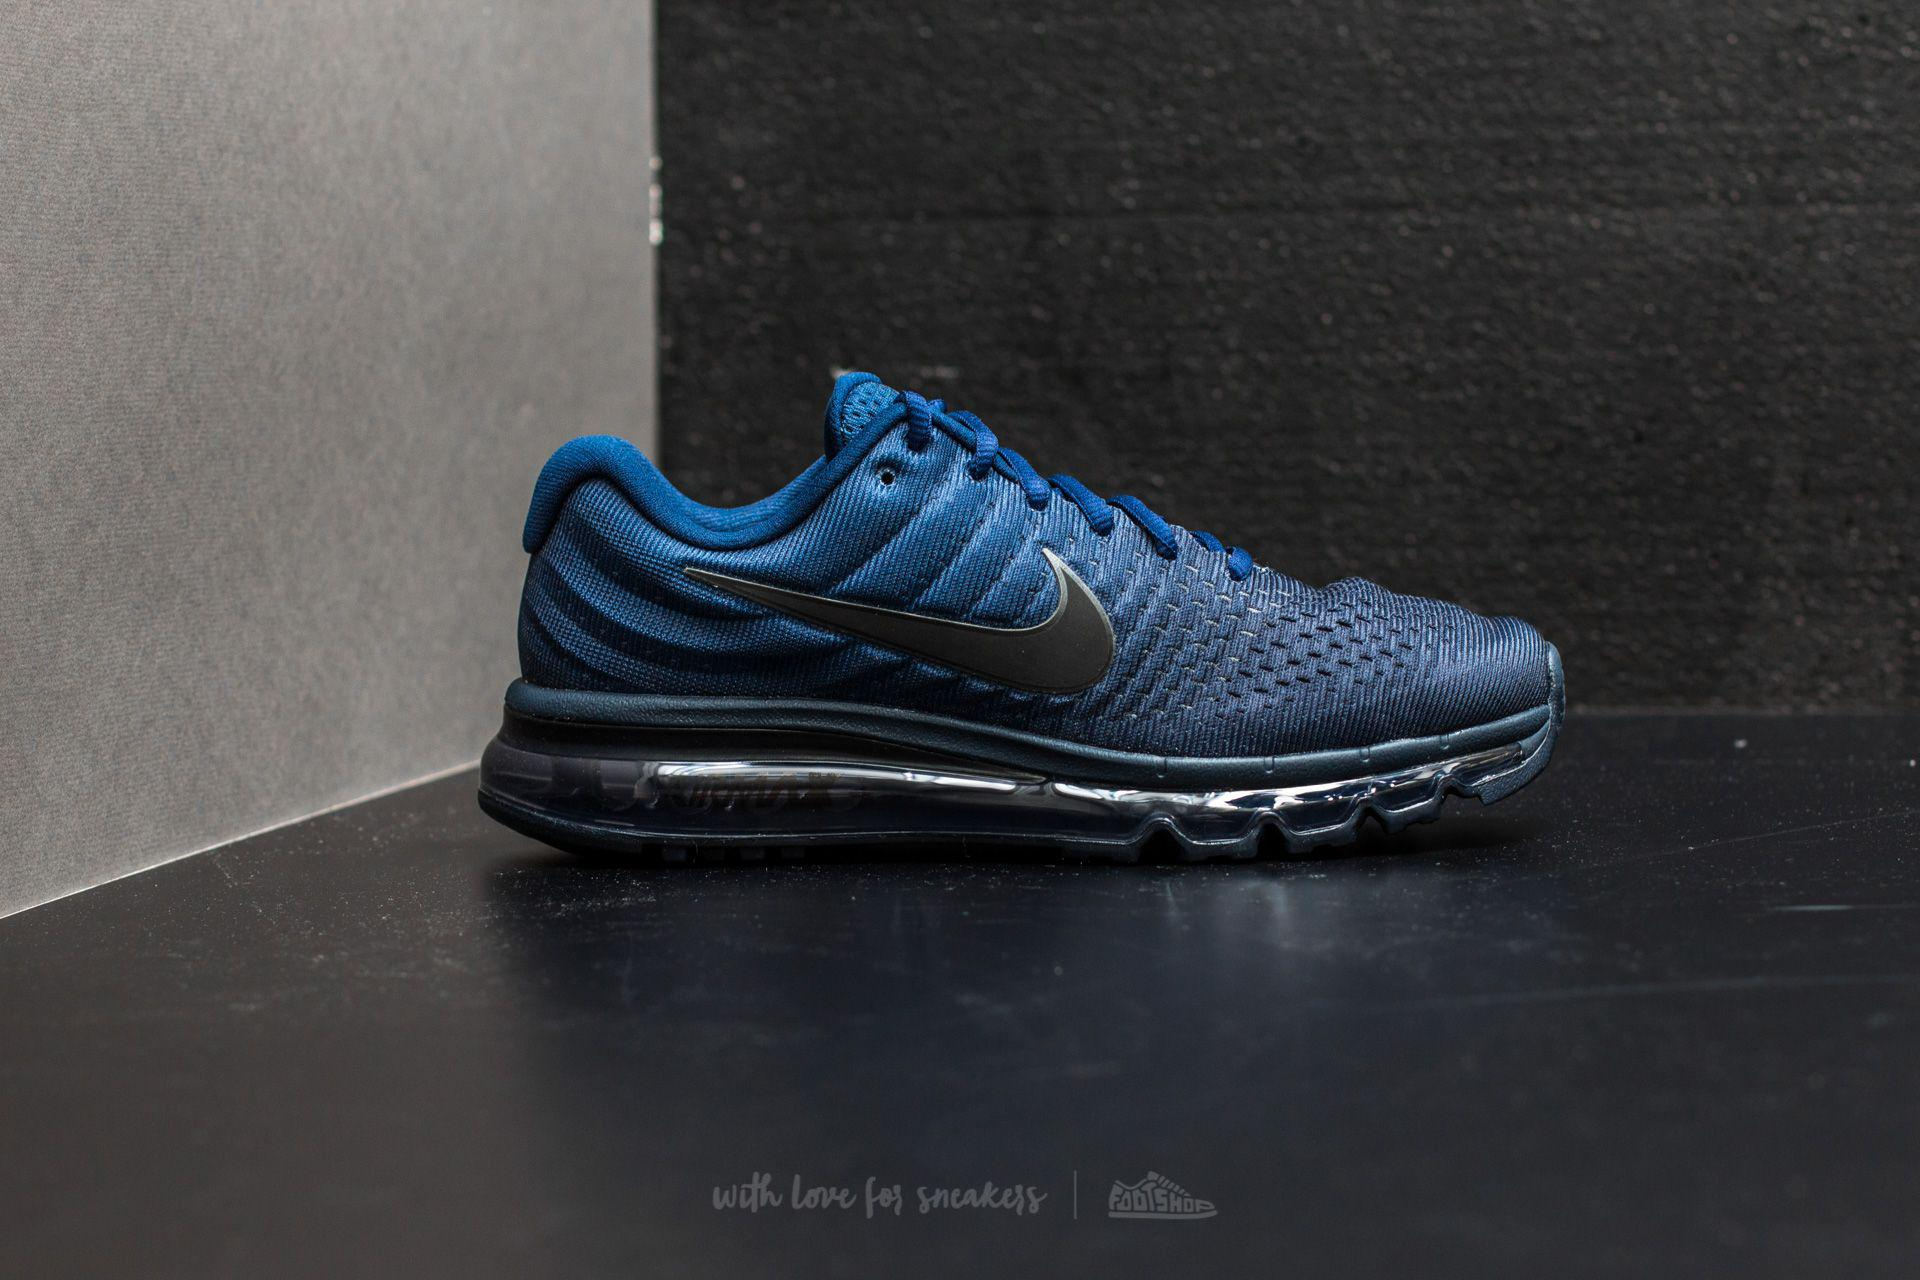 low priced 50cf8 e67ab ... purchase lyst nike air max 2017 binary blue black obsidian in blue for  men 98050 ed082